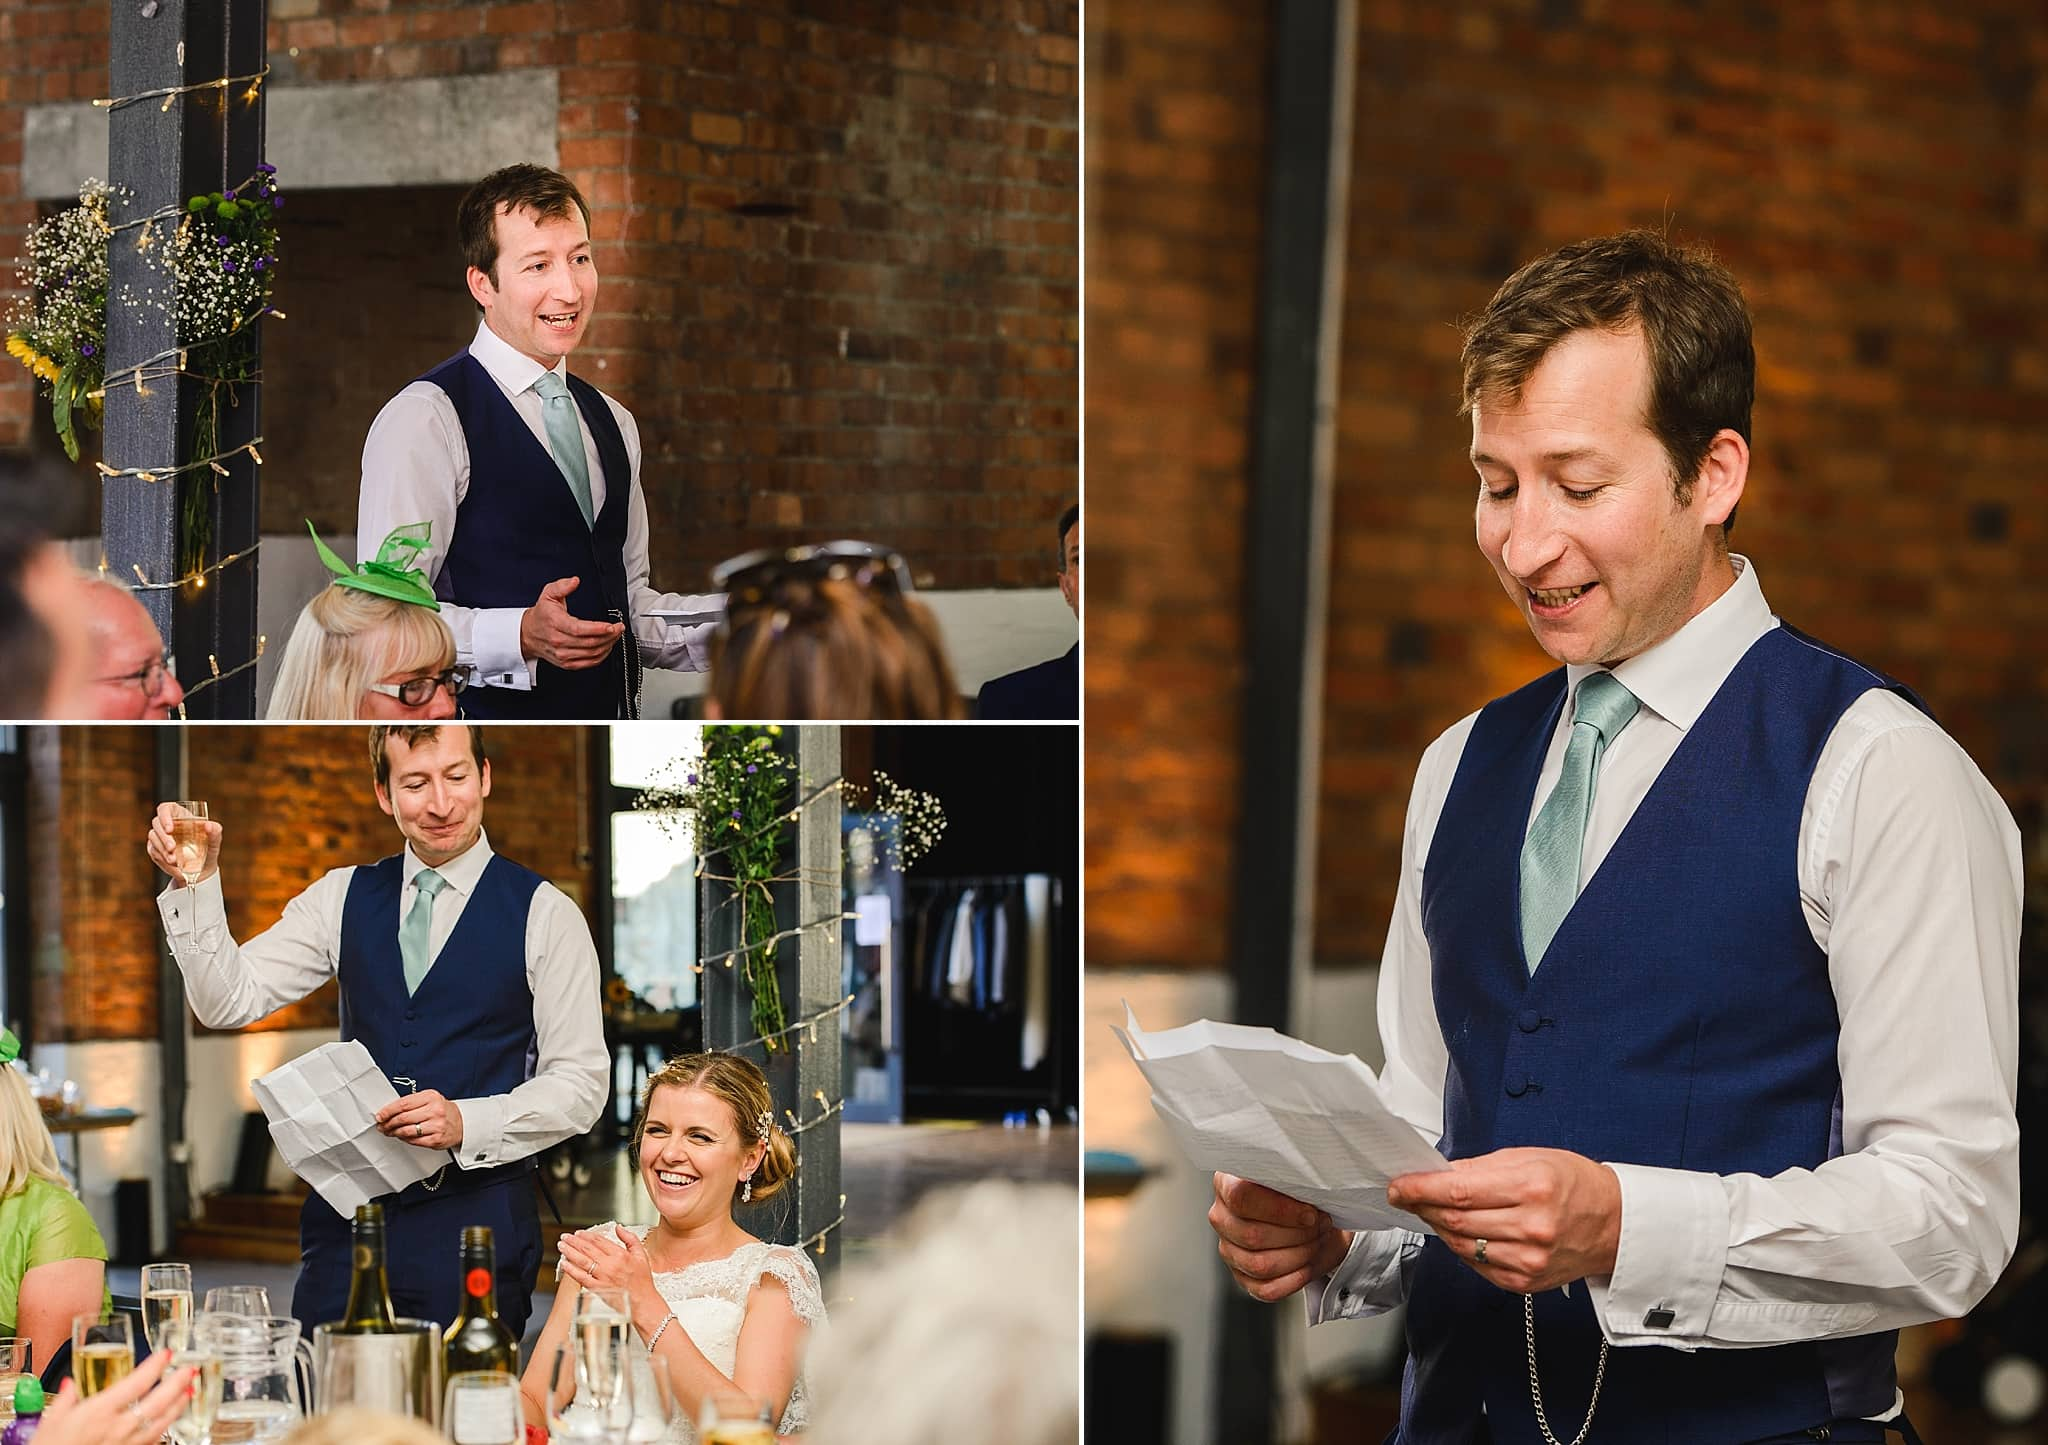 The groom reading out his speech in front of his wedding guests at the Paintwork's Bristol wedding